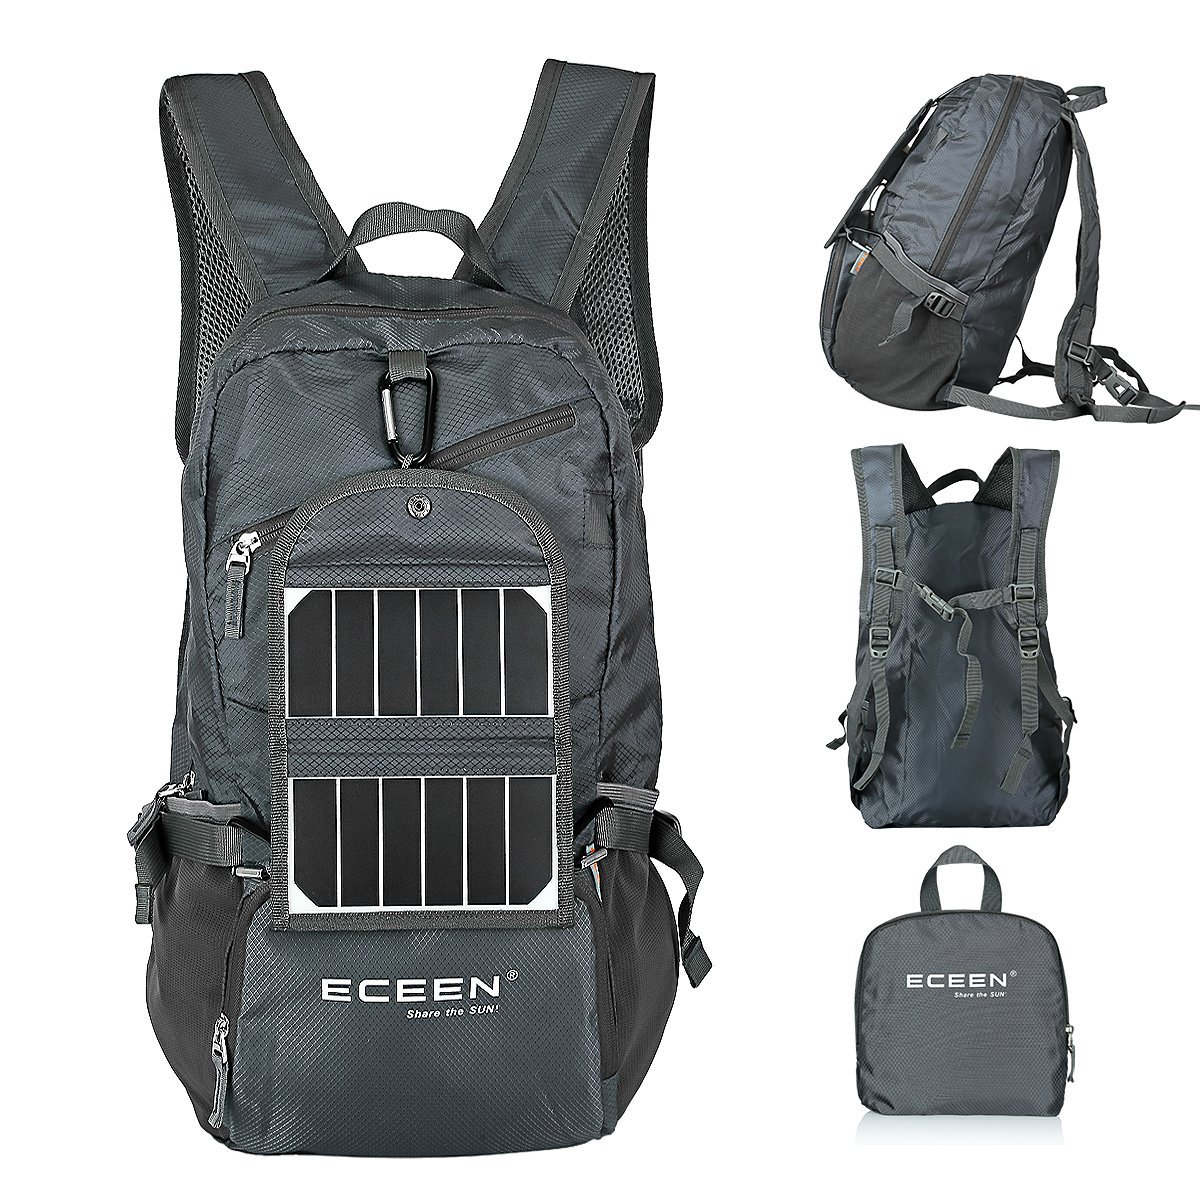 ECEEN Hiking Daypack with Solar Panel and Battery - WanderGoGo